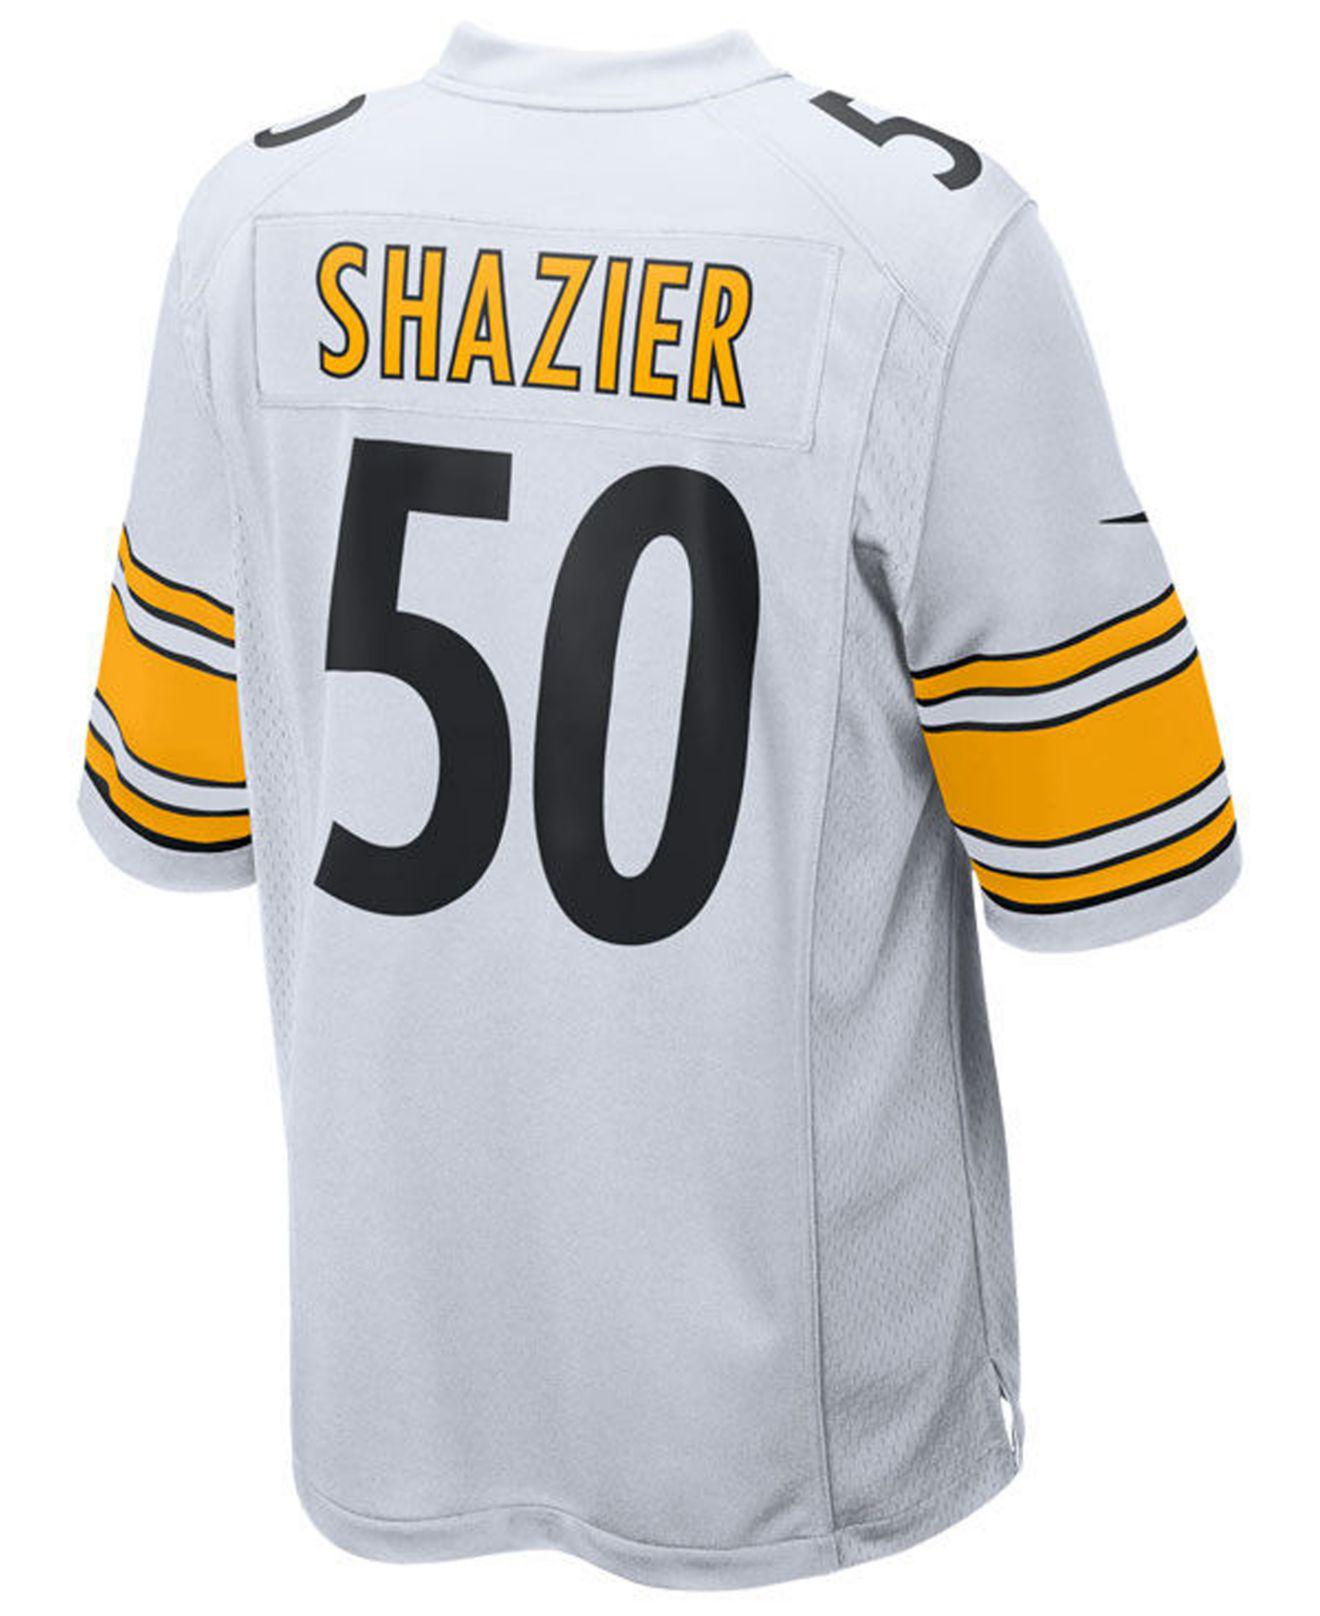 Lyst - Nike Ryan Shazier Pittsburgh Steelers Game Jersey in White ... 5d187c101